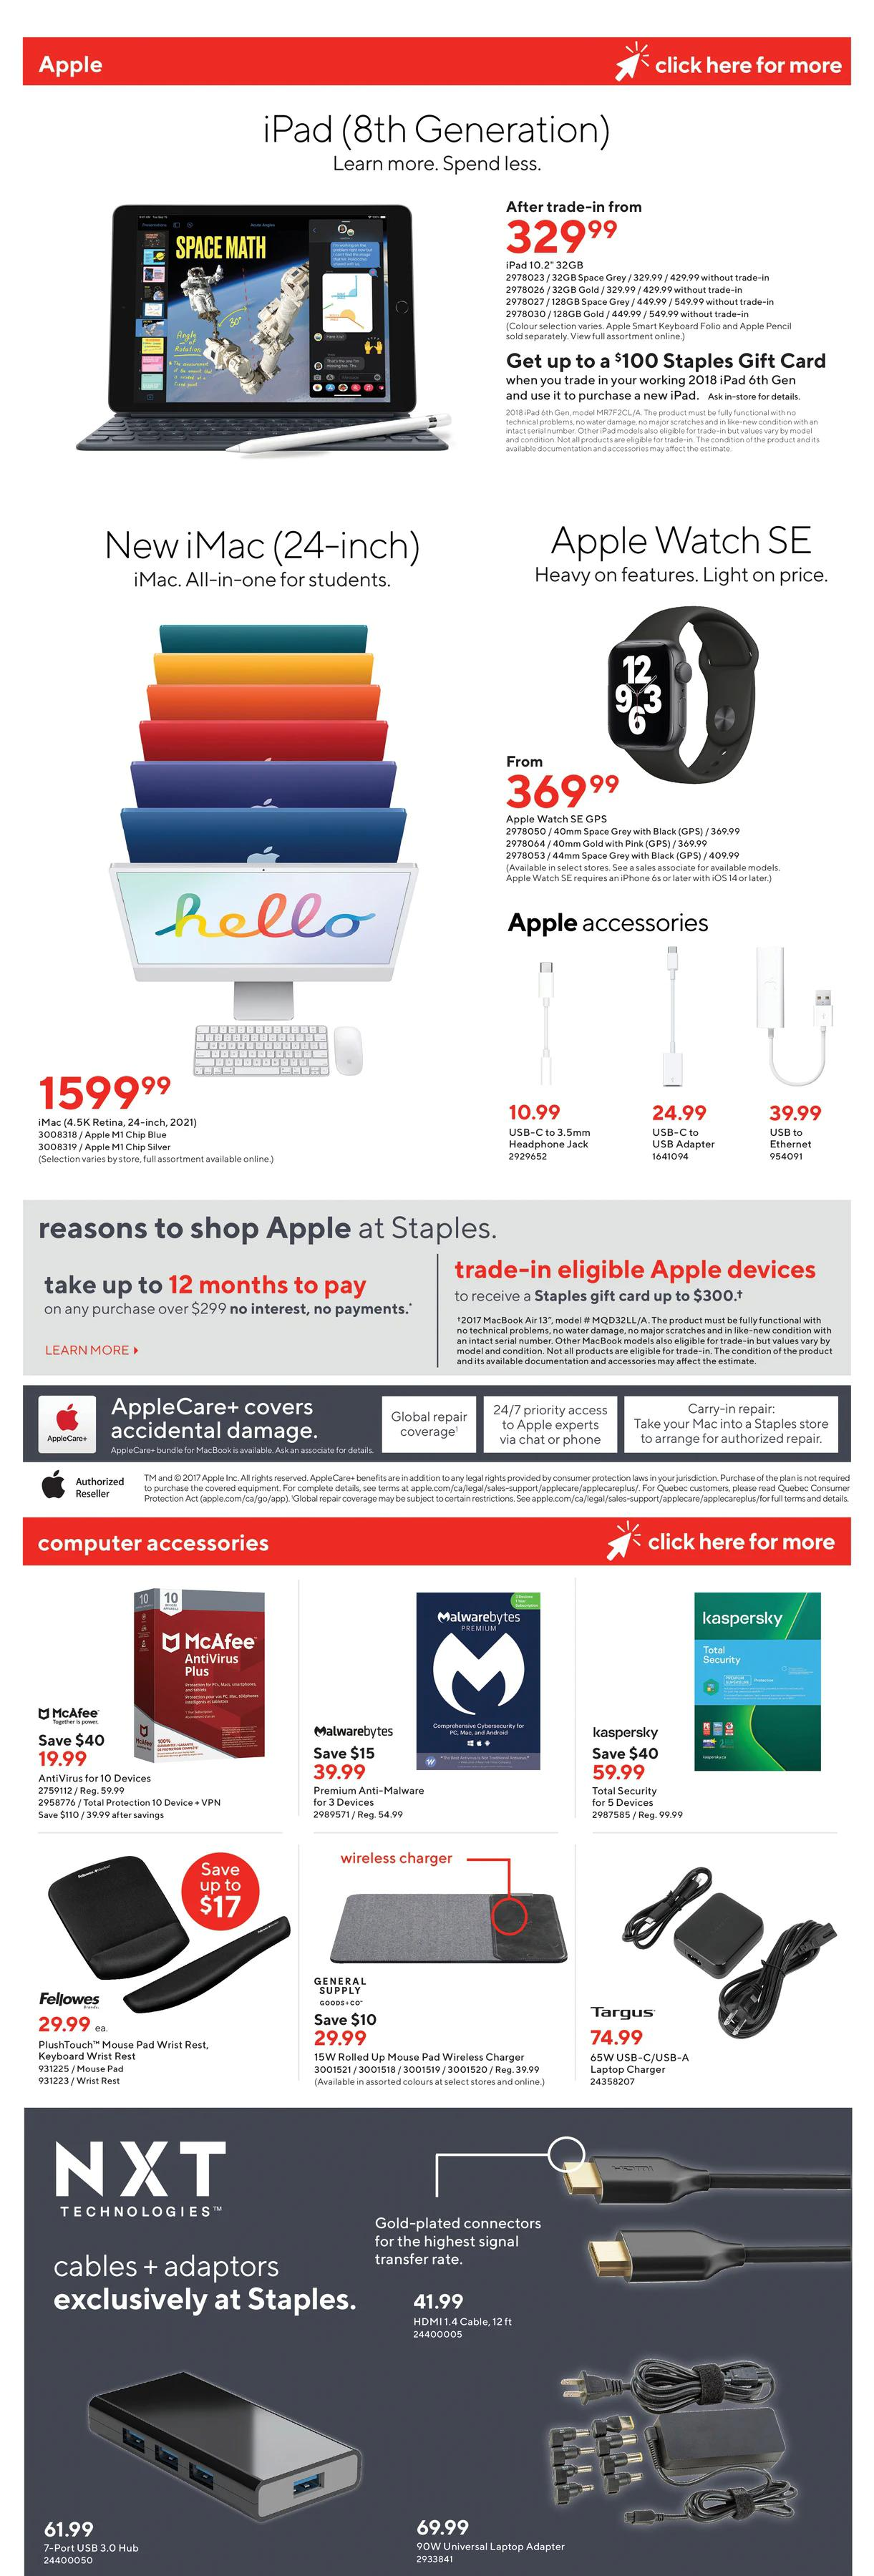 Staples - Weekly Flyer Specials - Page 5